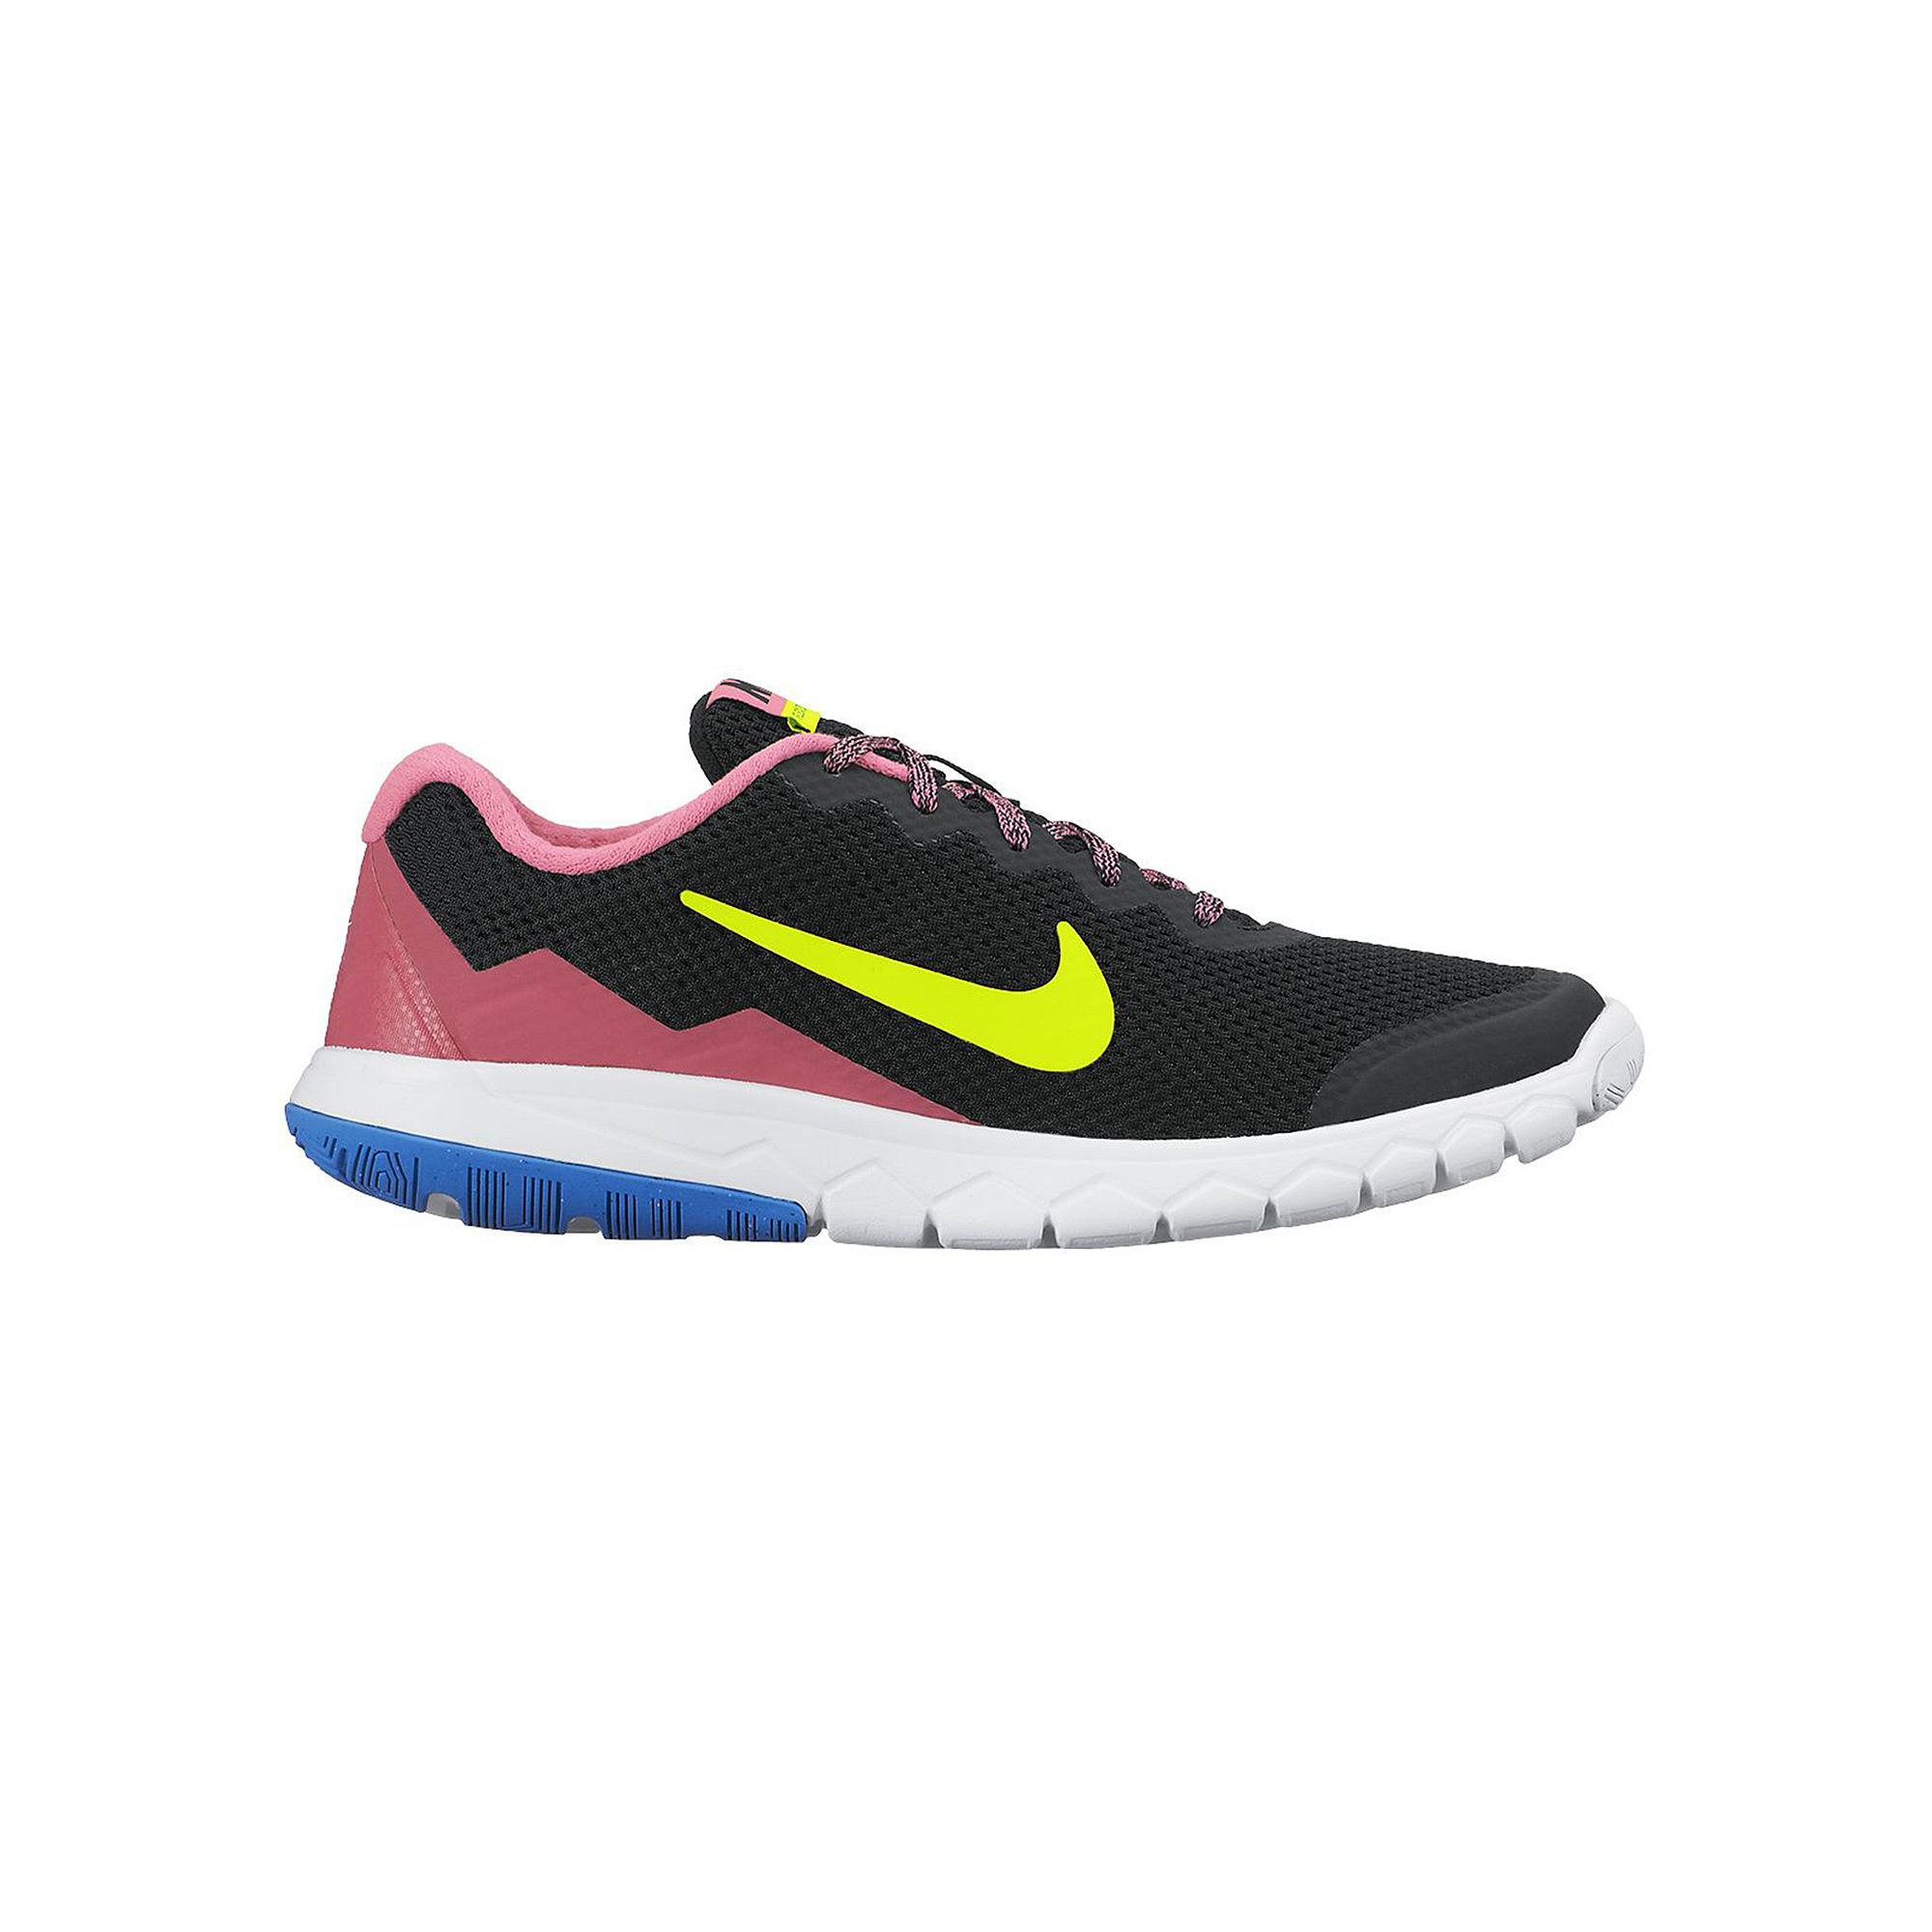 new product ff80b f7613 ... UPC 888410288078 product image for Nike Flex Experience 4 Girls Running  Shoes - Big Kids ...